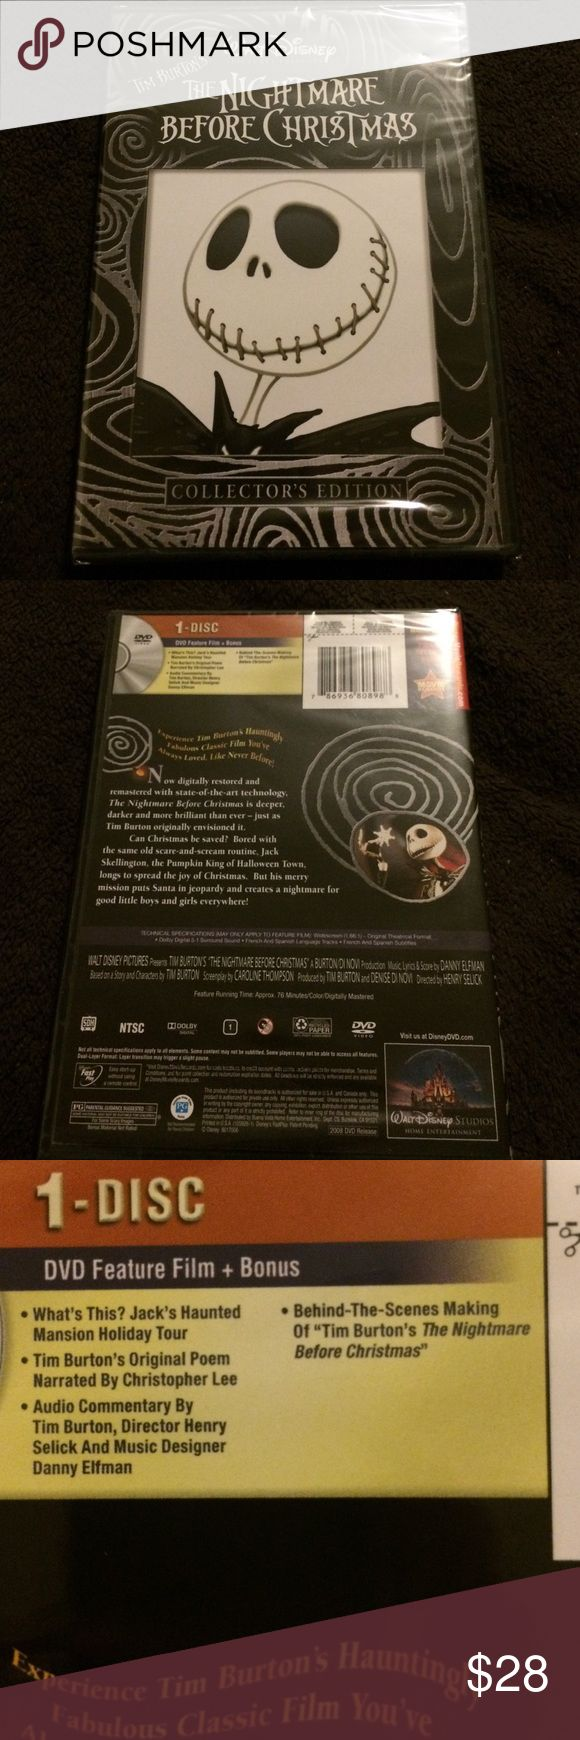 The nightmare before Christmas DVD Collectors edition lots of fun bonuses and never opened brand new!!! walt disney  Other